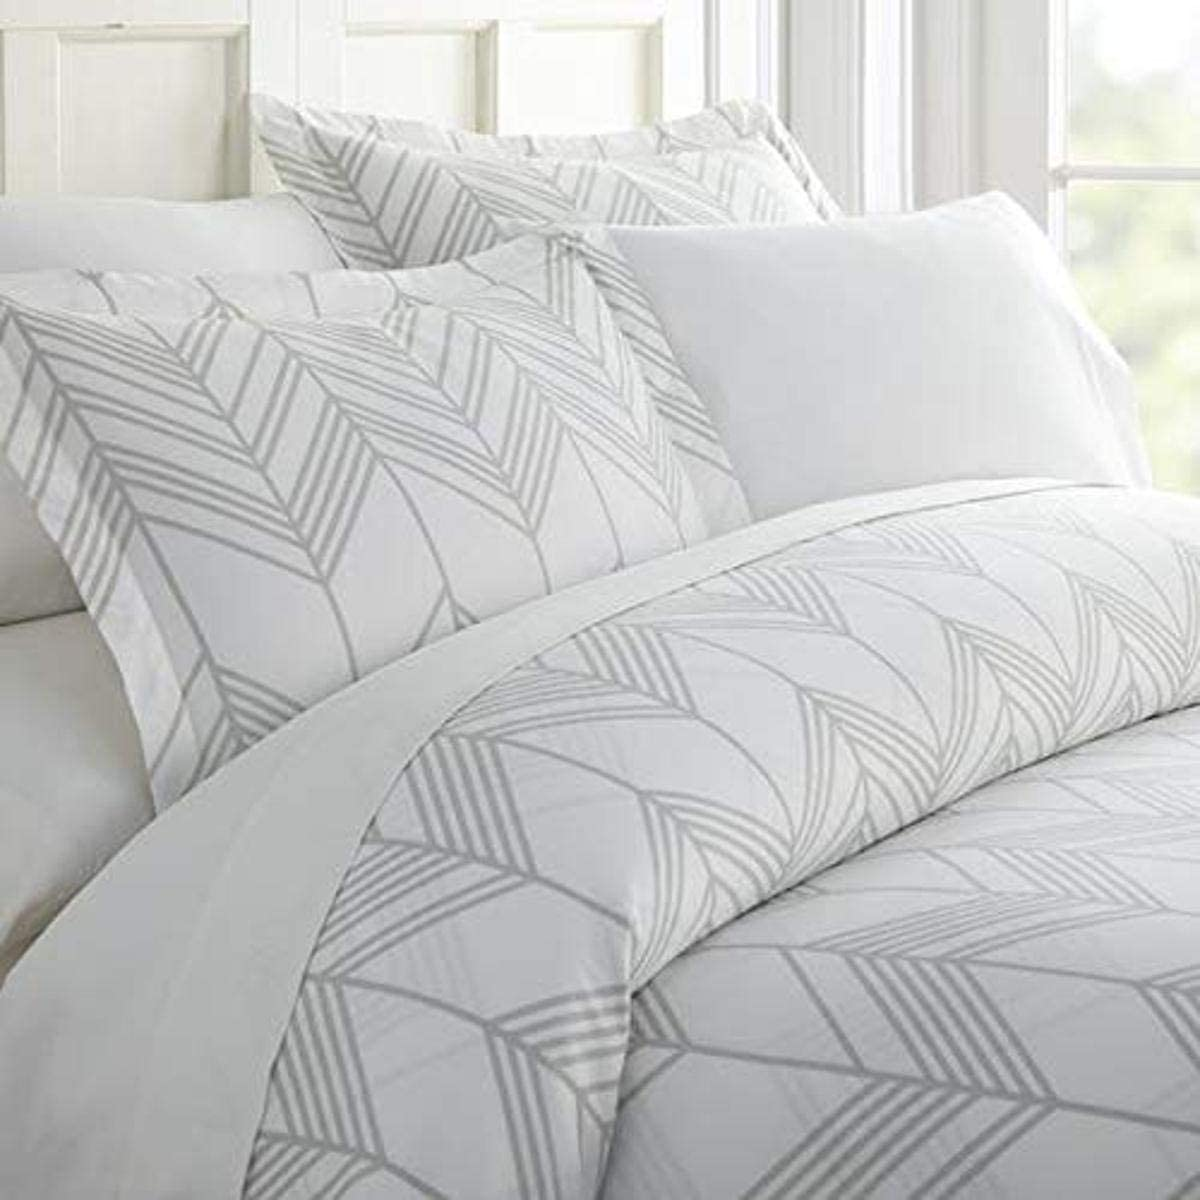 Home Collection iEnjoy Home Hotel Collection Premium Ultra Soft Alps Chevron Pattern 3 Piece Duvet Cover Bed Sheet Set, Twin/Twin Extra Long, Light Gray